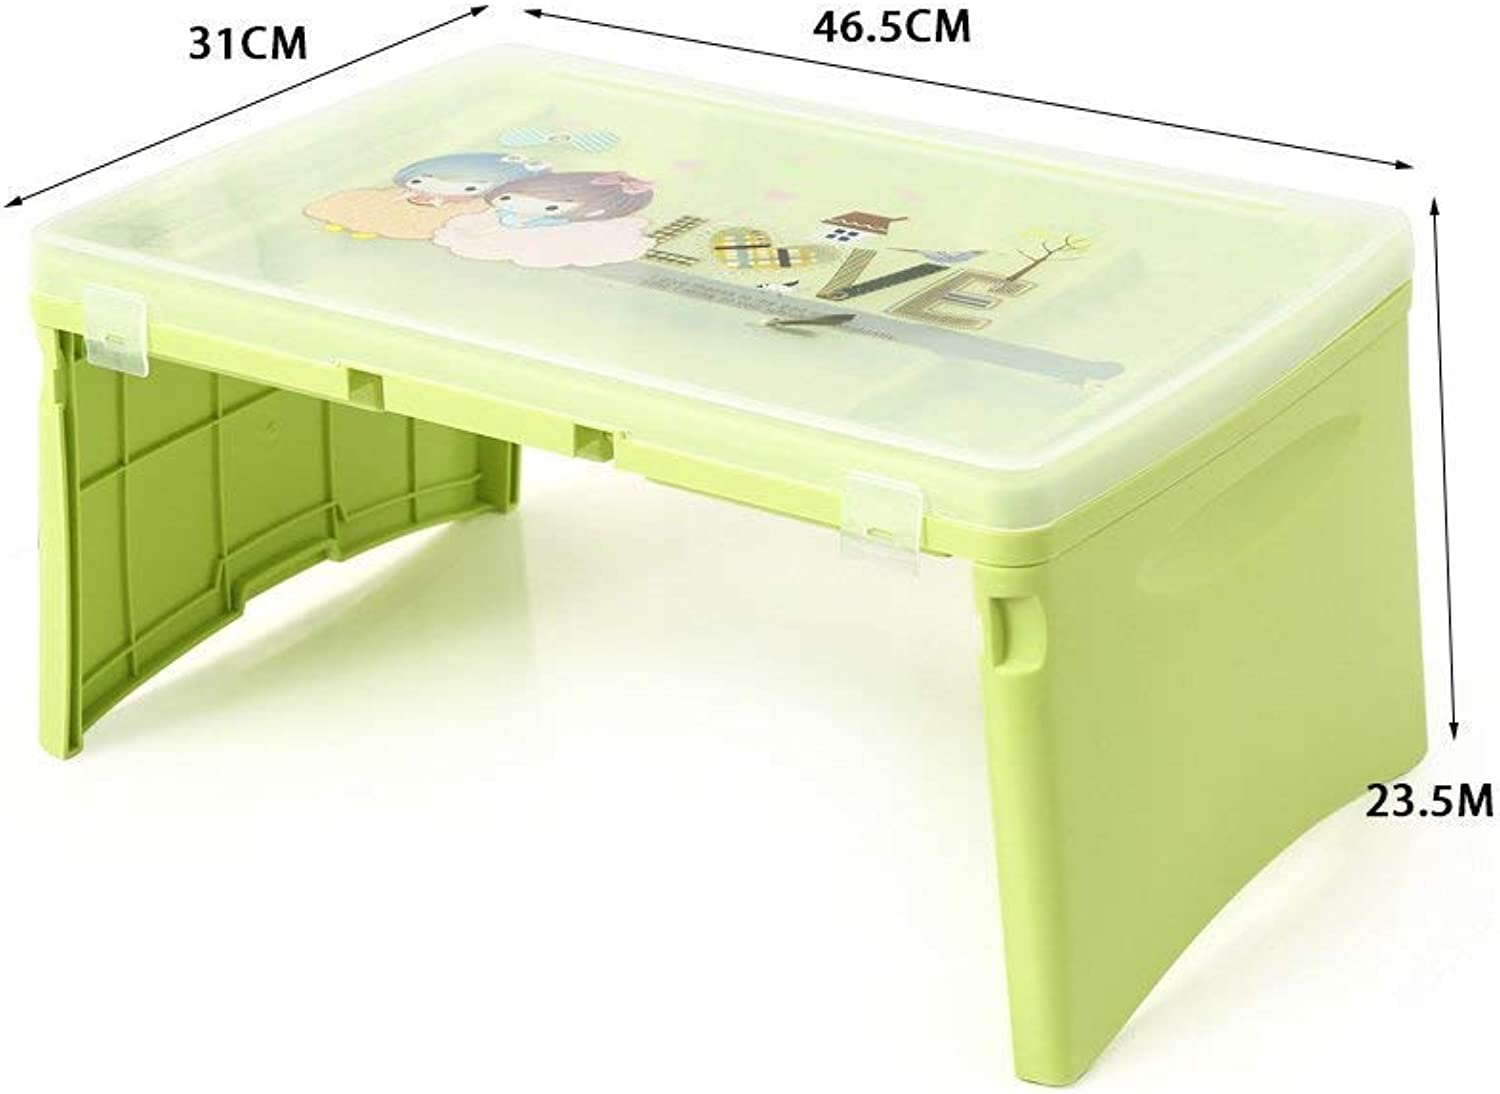 Home Practical Folding Table Small Table- Folding Table Plastic Multifunction Storage Table Foldable Storage Table Computer Desk Save Space Dormitory Student Easy Lazy Bed Simple Home (color   1)